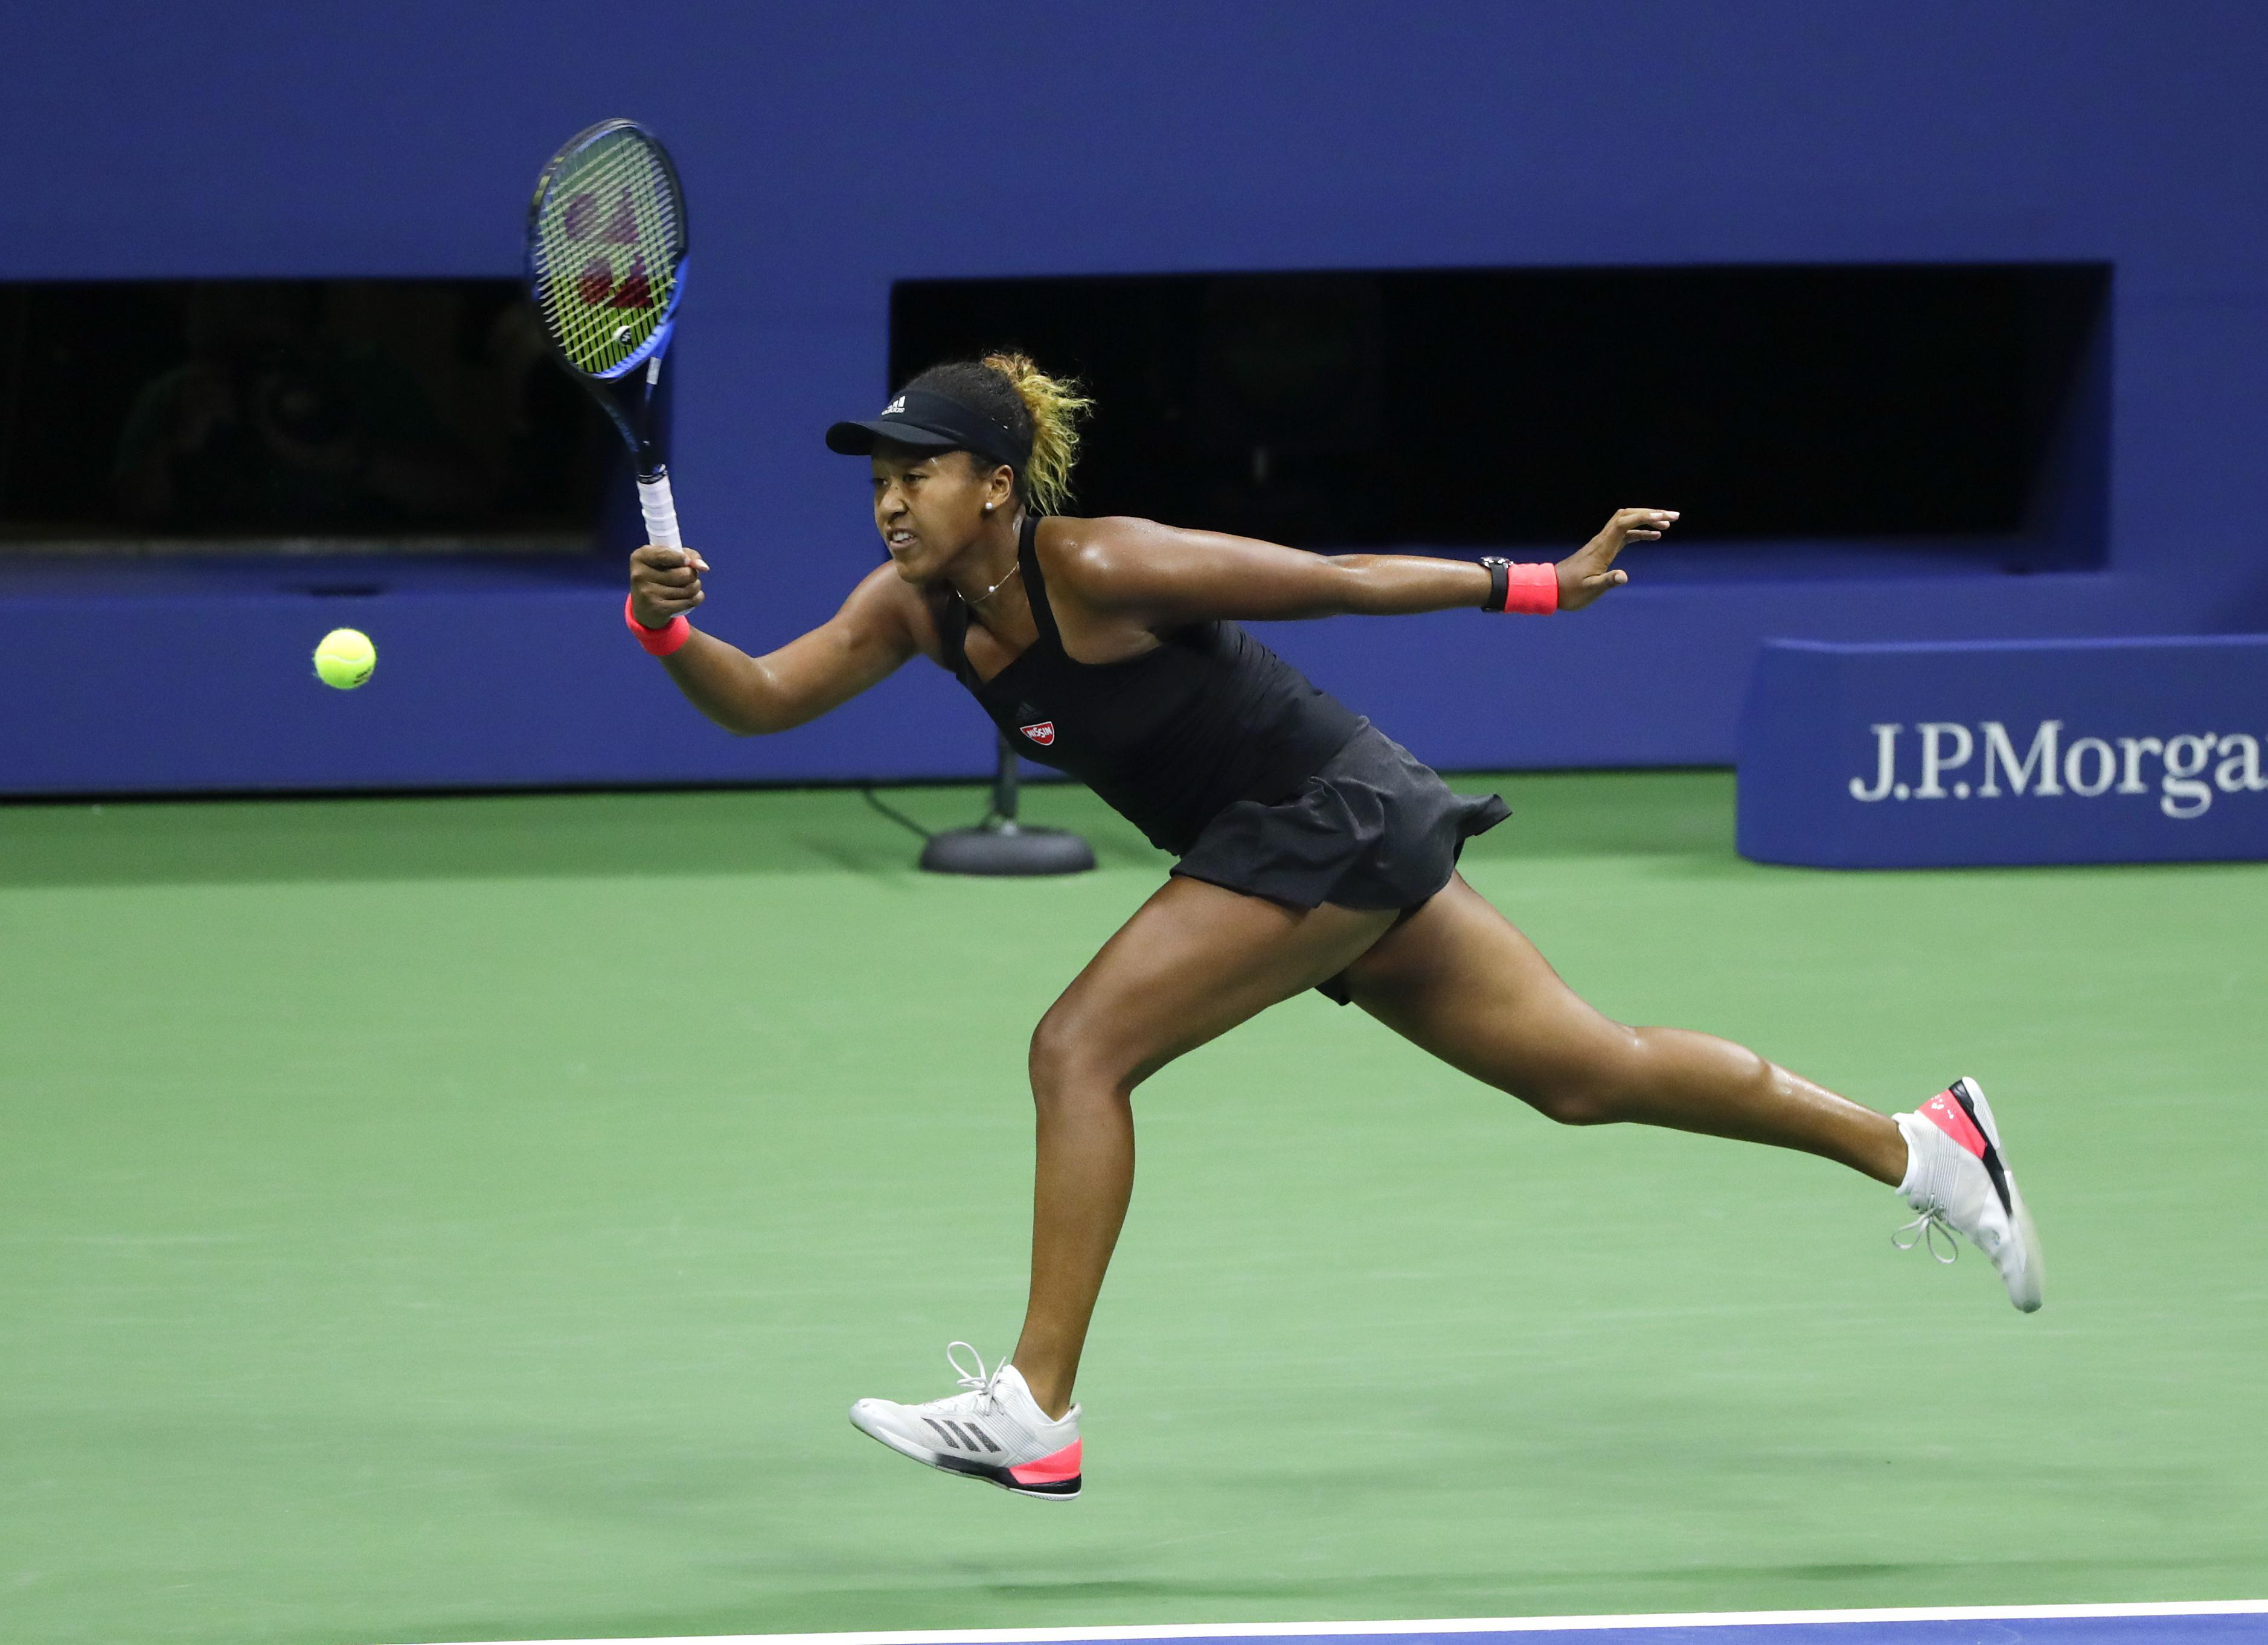 Osaka beat Madison Keys in the semi-finals to reach her first Grand Slam final